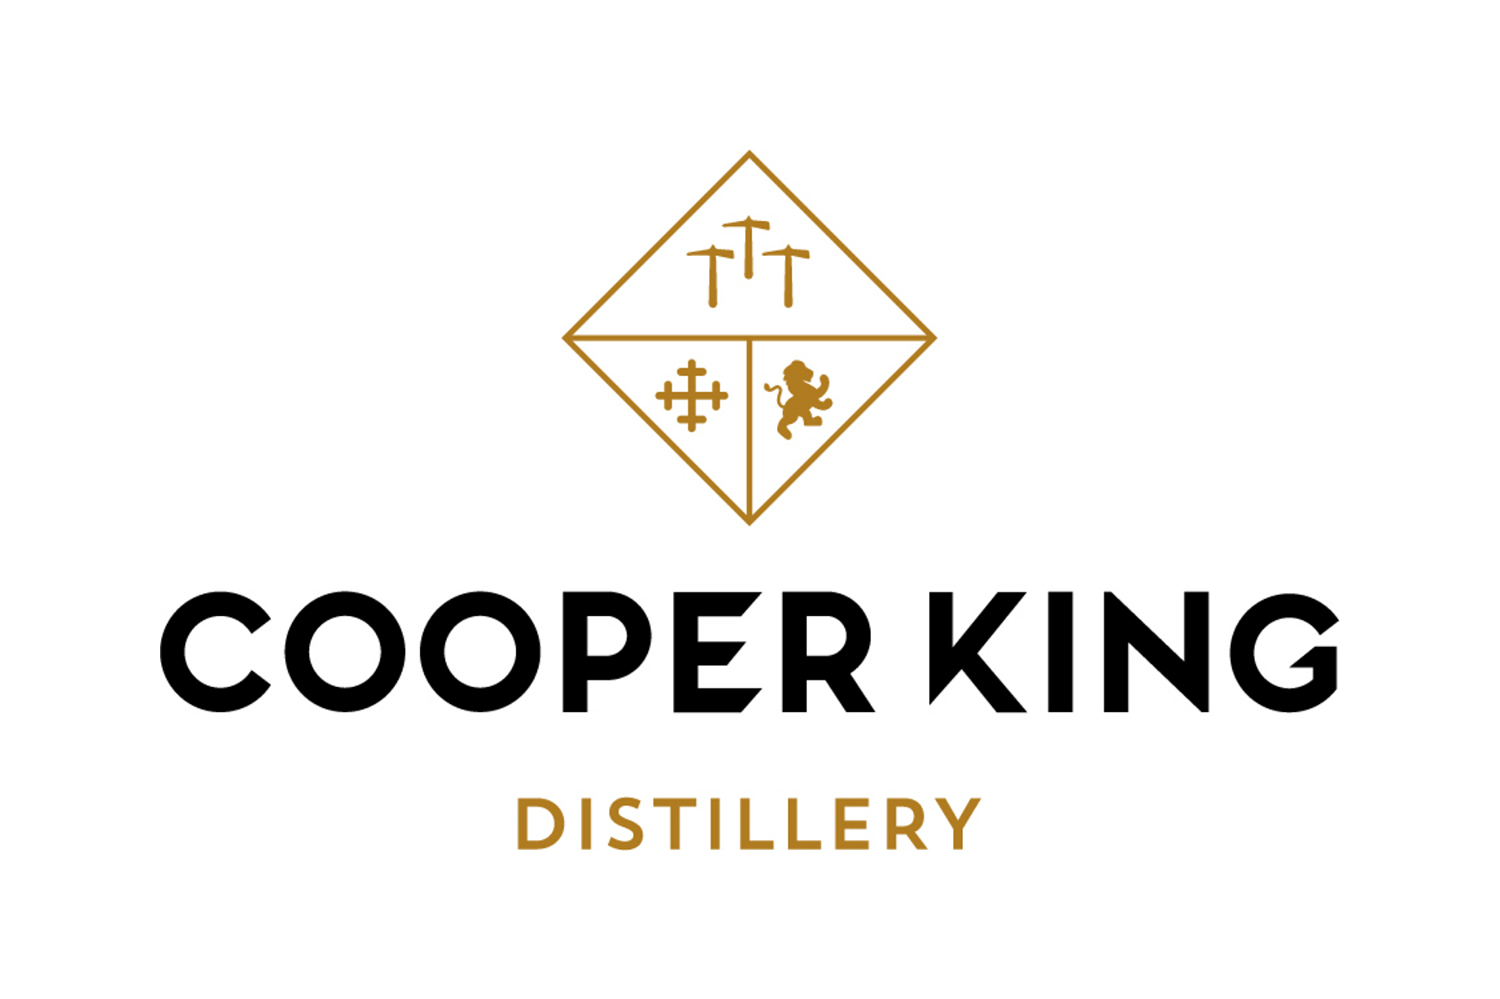 A modern take on the Cooper King shield